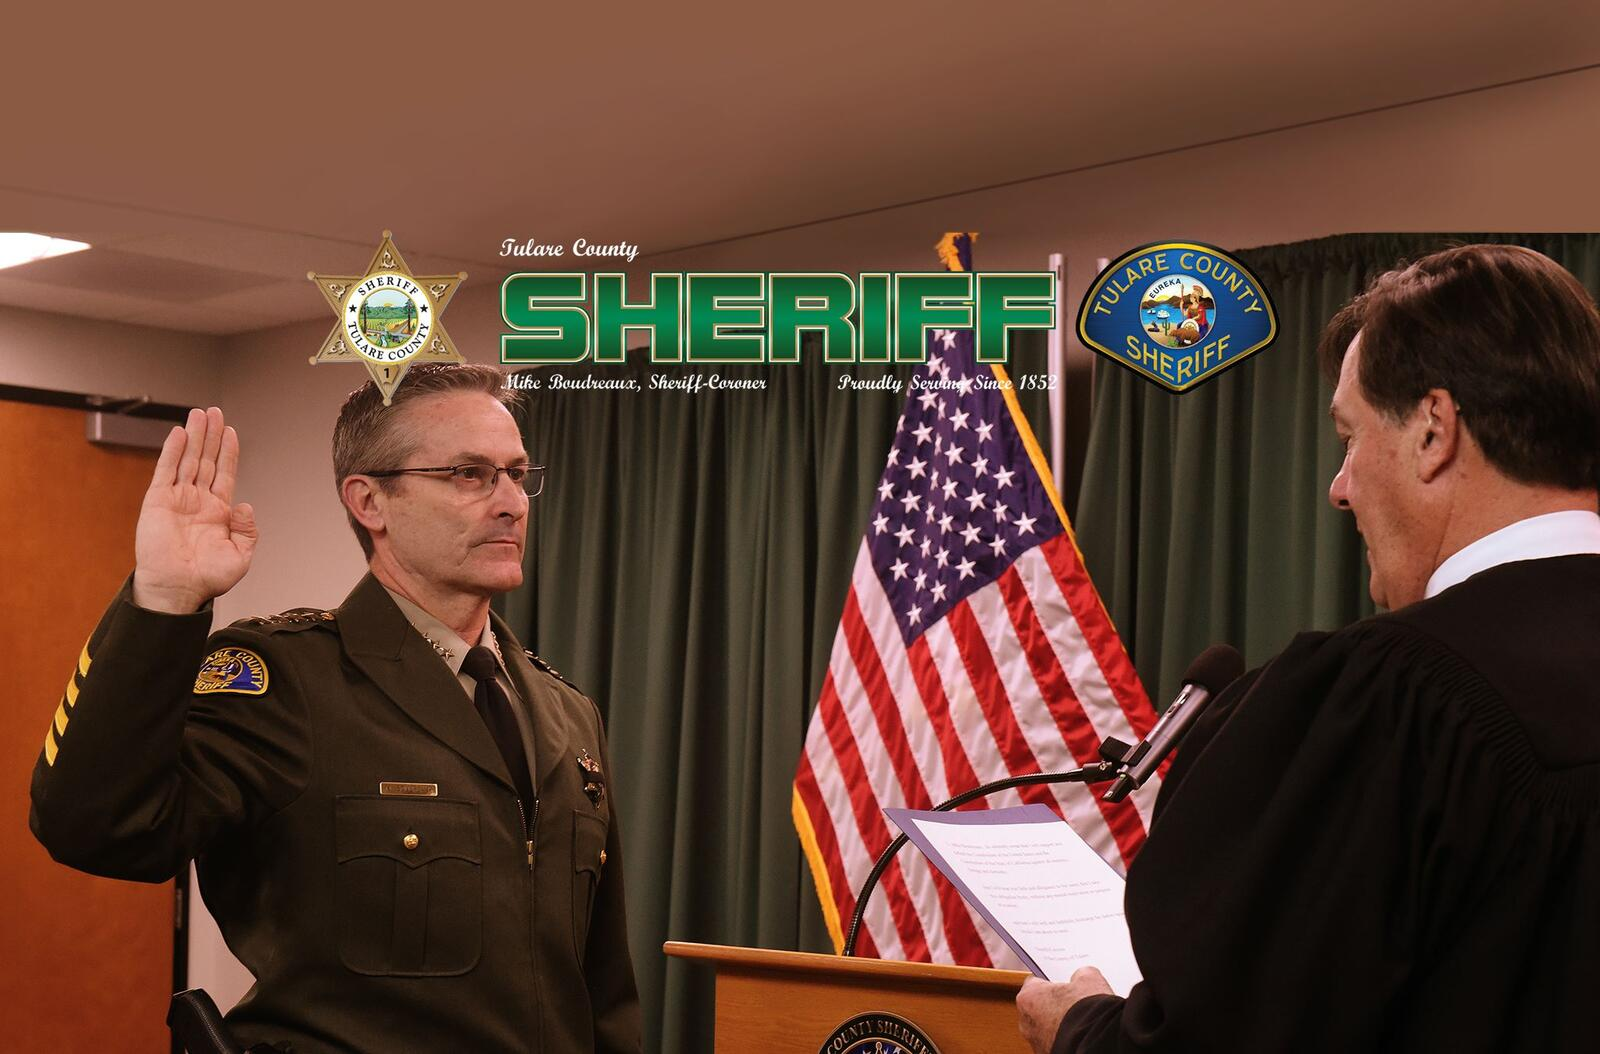 Tulare County Sheriff's Office - 18 Crime and Safety updates